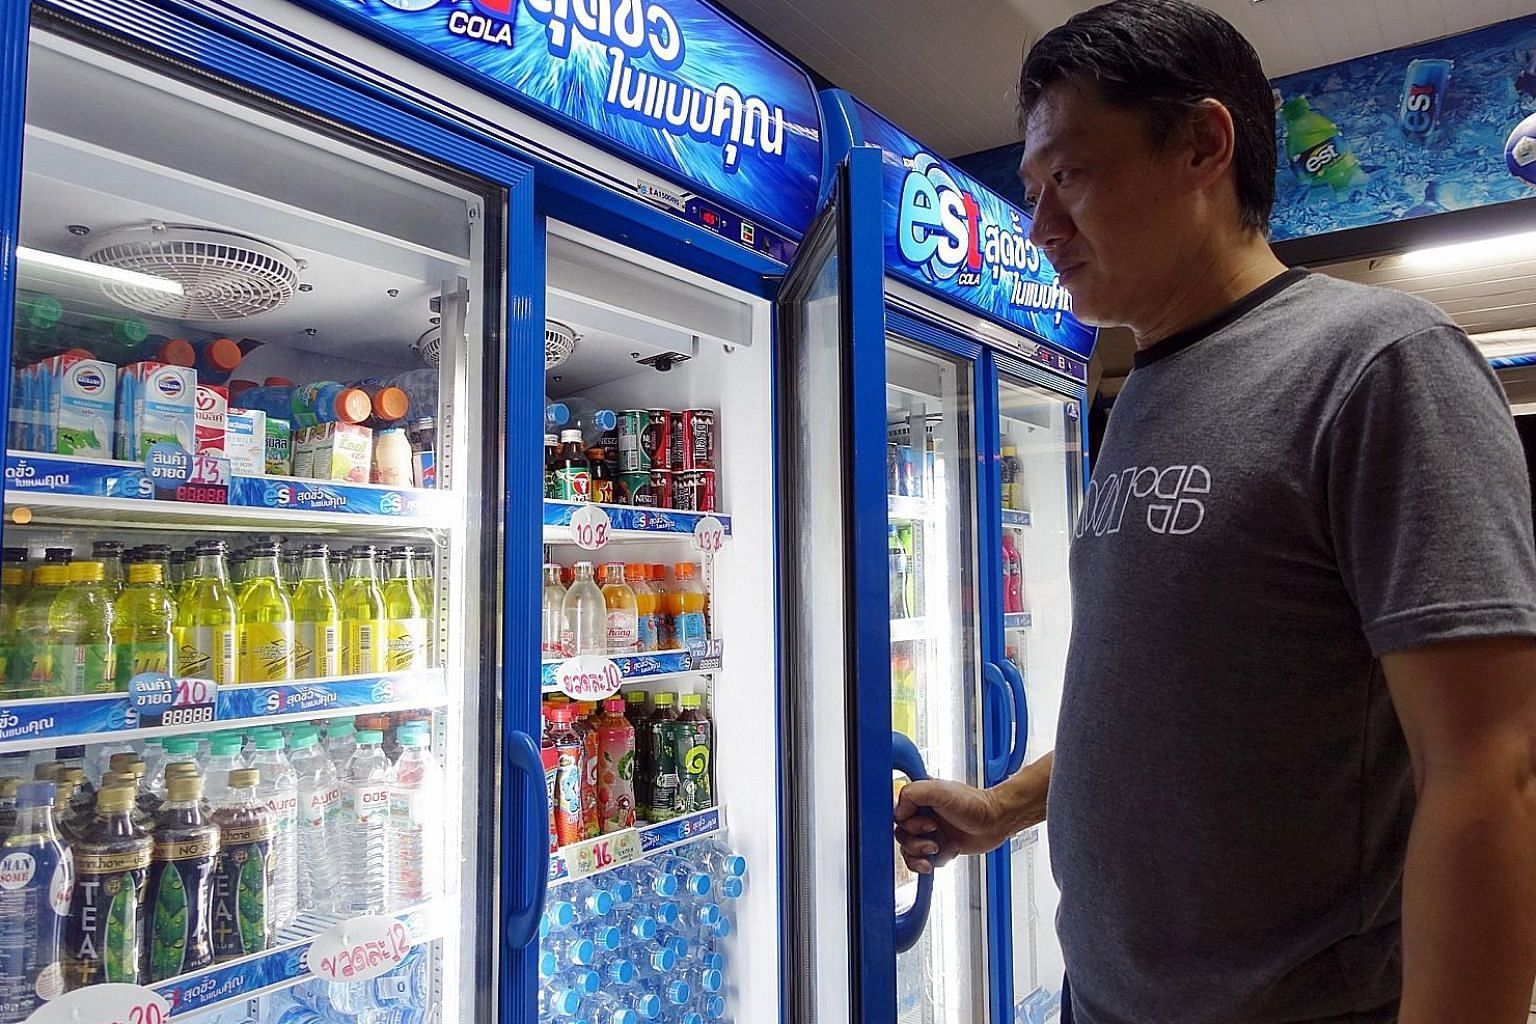 Over 40 countries have meaningful taxes or levies on sugary drinks, often imposed on manufacturers and importers, rather than on consumers directly, the writer says.